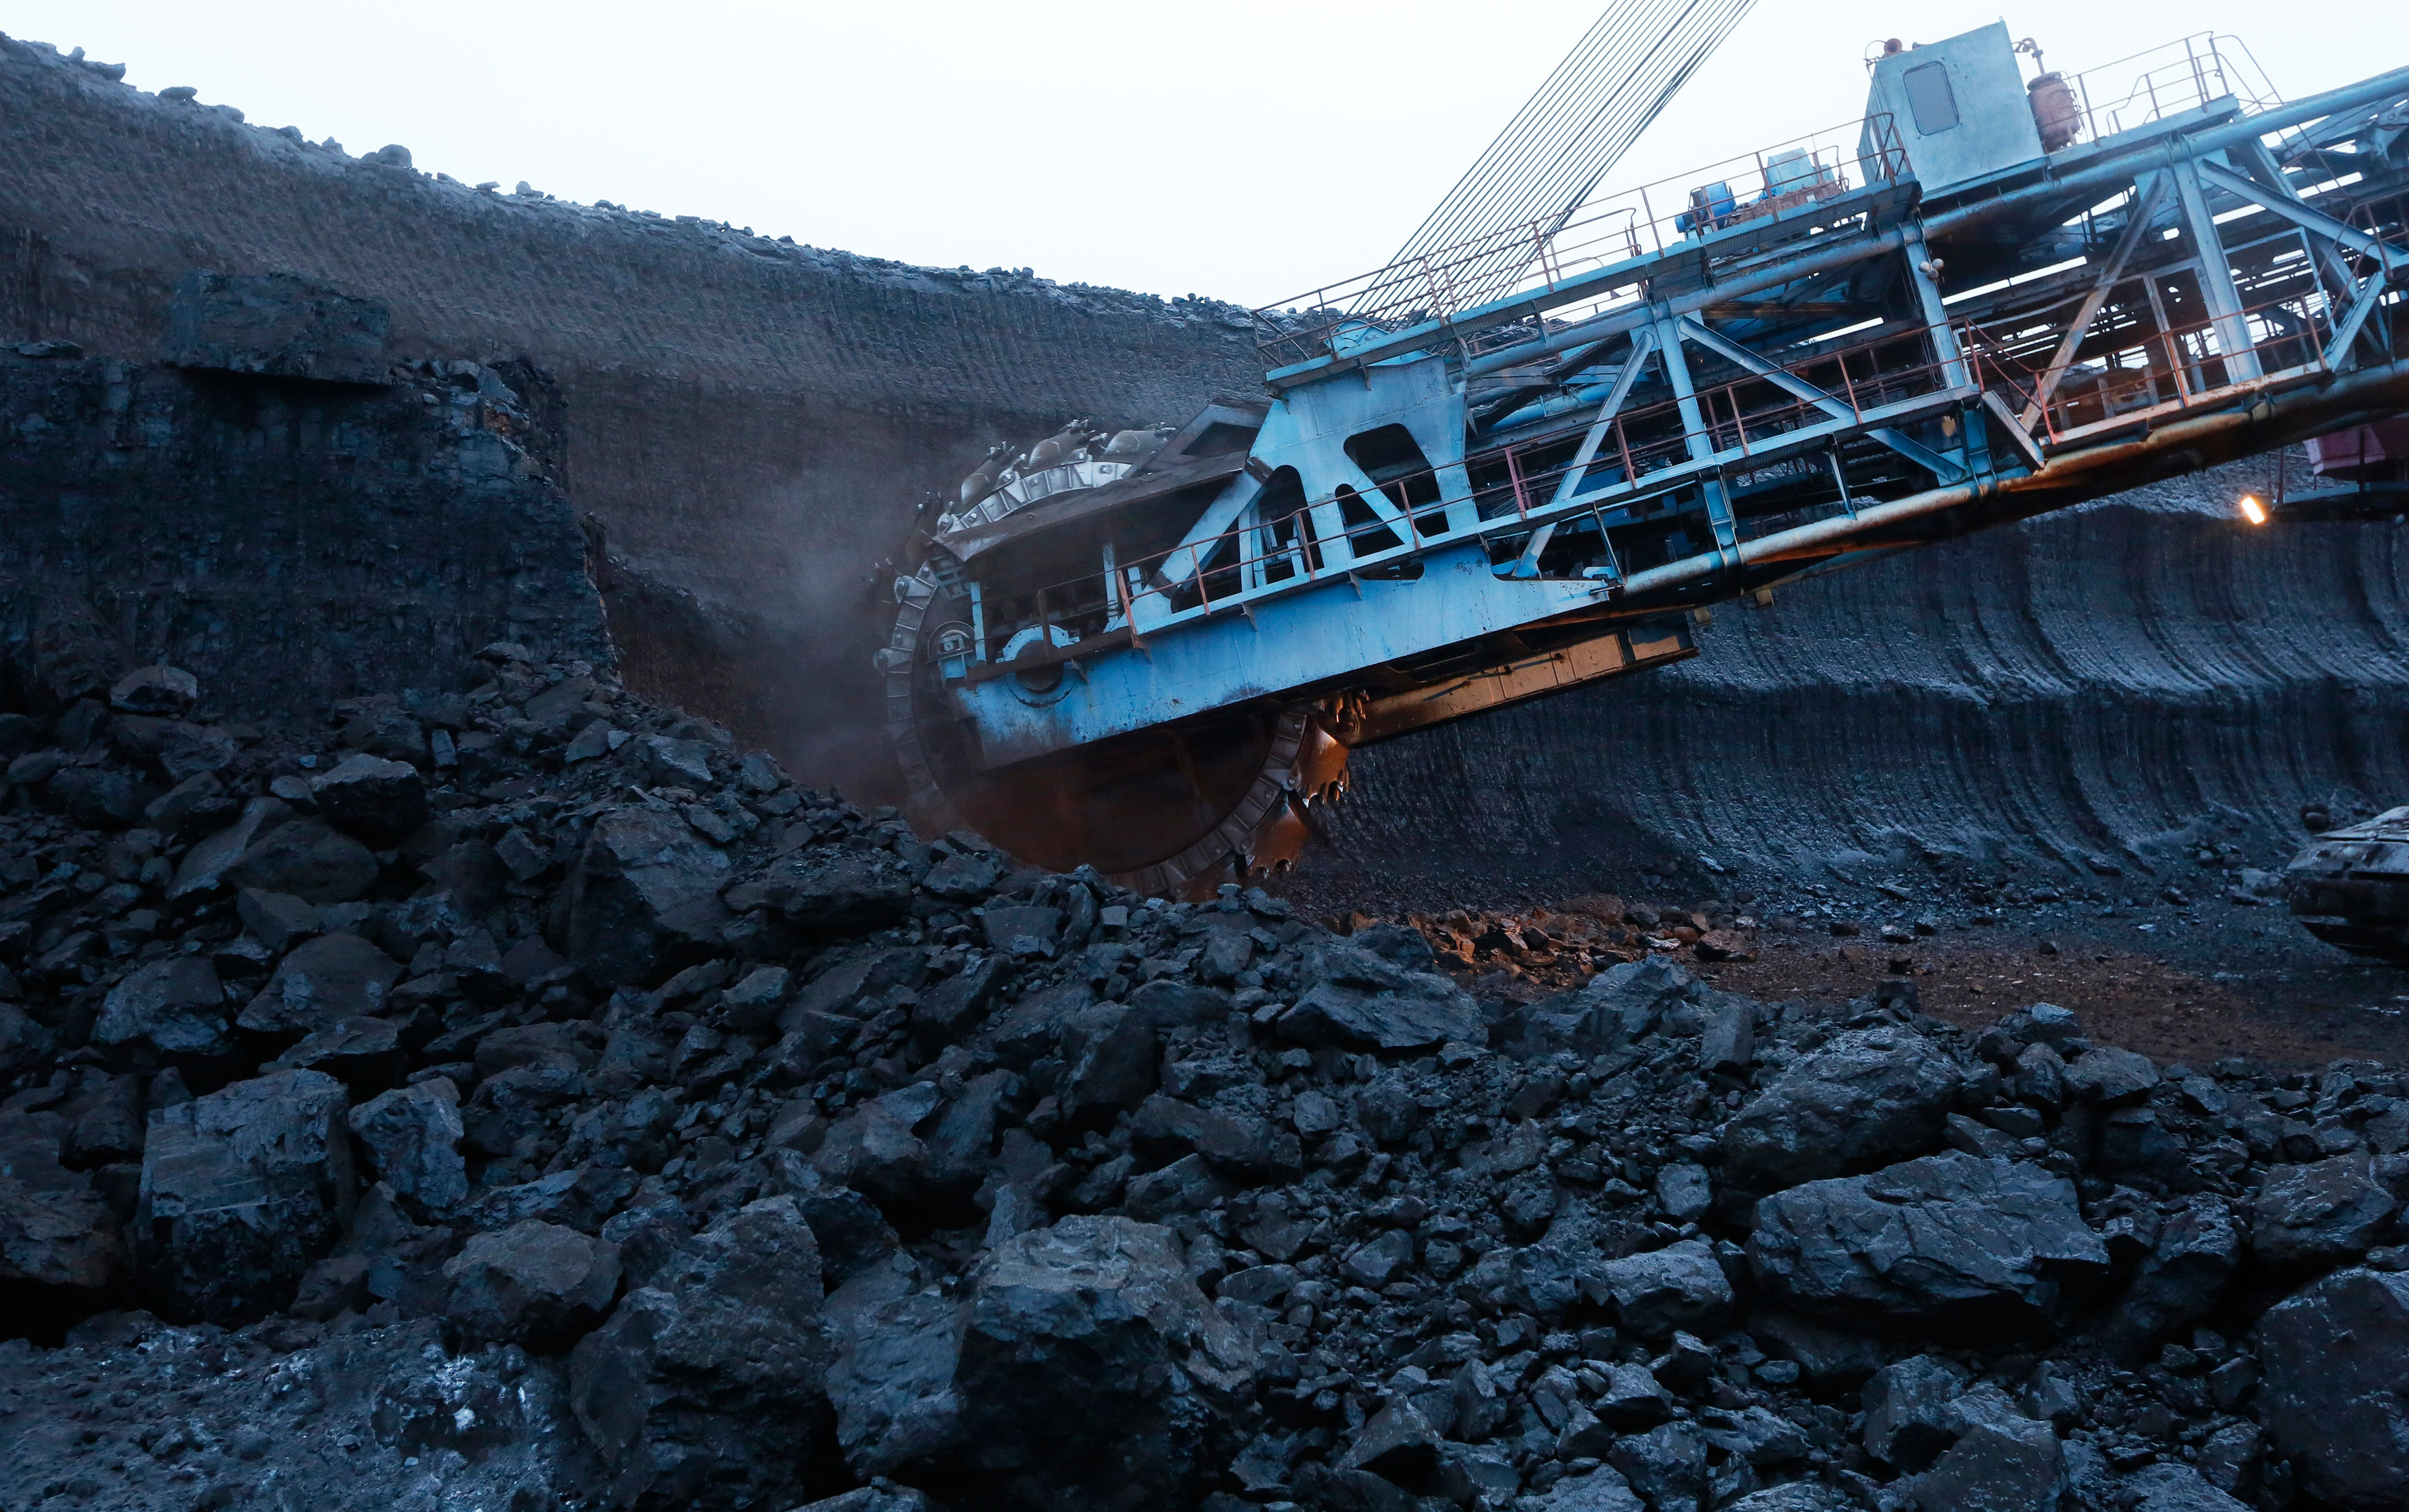 Govt expected to mop up around $4B by selling 10% stake in Coal India on Friday